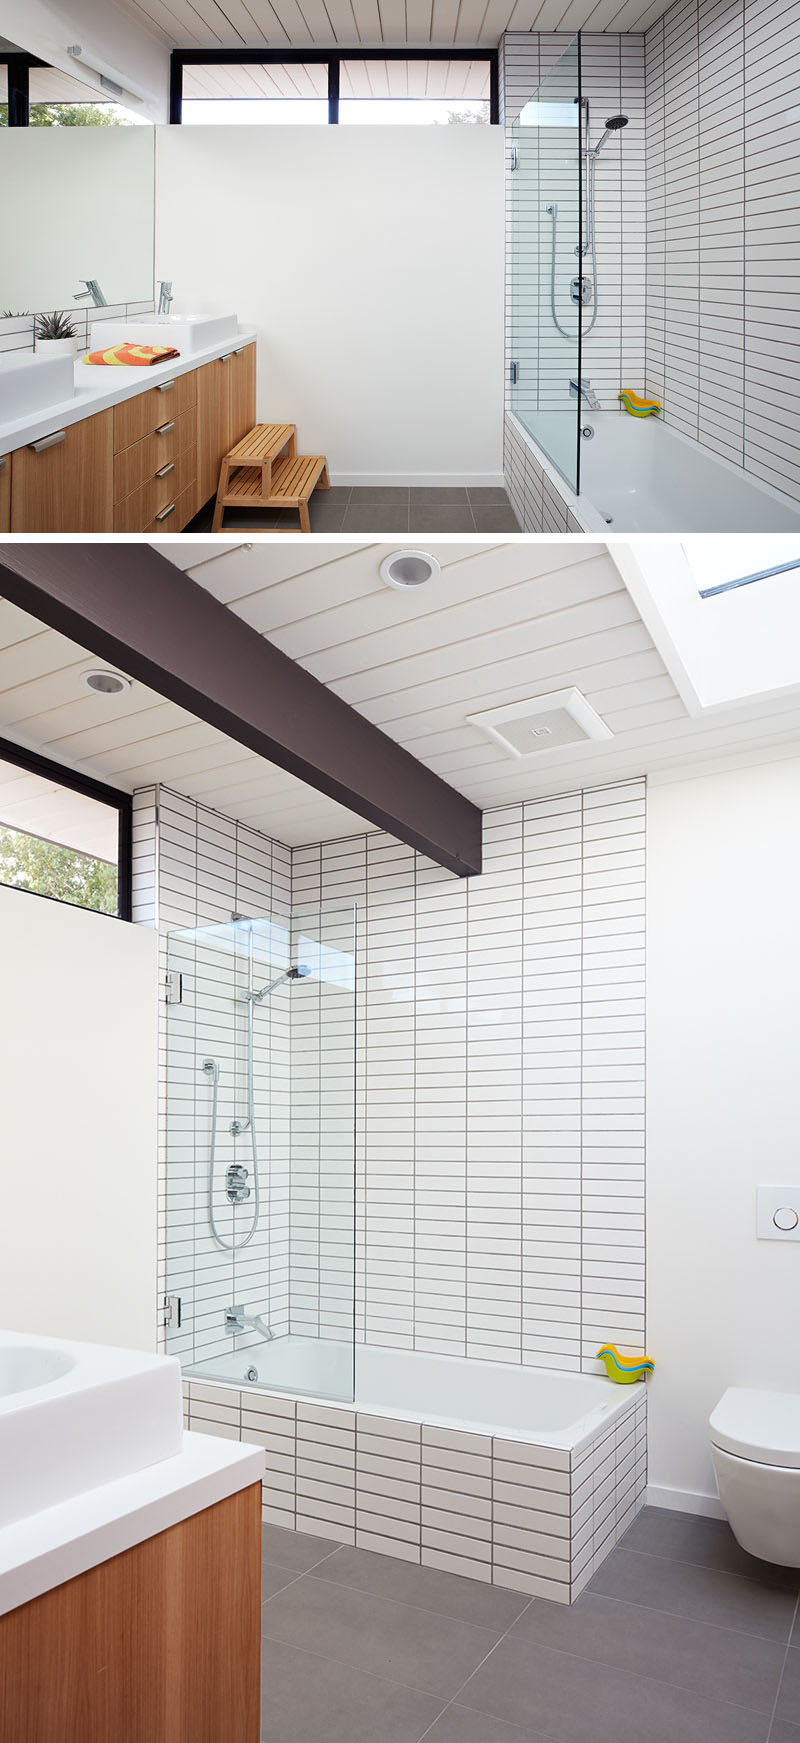 In this modern bathroom, grey tiles have been used for the flooring, while a wood vanity adds a natural touch. In the shower/bath combo, dark grout has been used to accent the white rectangular tiles. #BathroomDesign #ModernBathroom